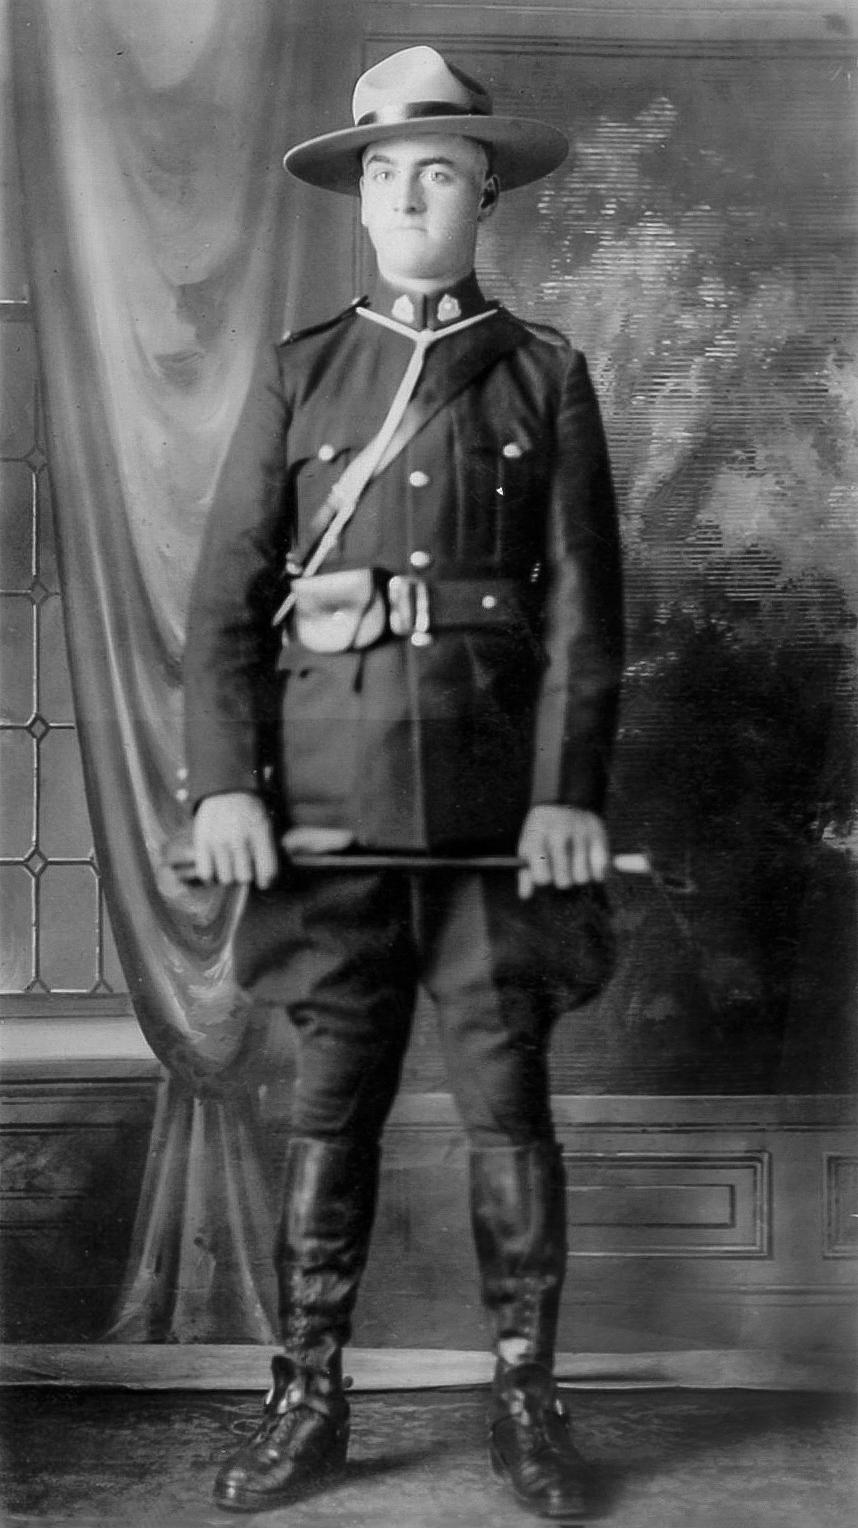 Constable Frederick Rhodes– © Her Majesty the Queen in Right of Canada as represented by the Royal Canadian Mounted Police